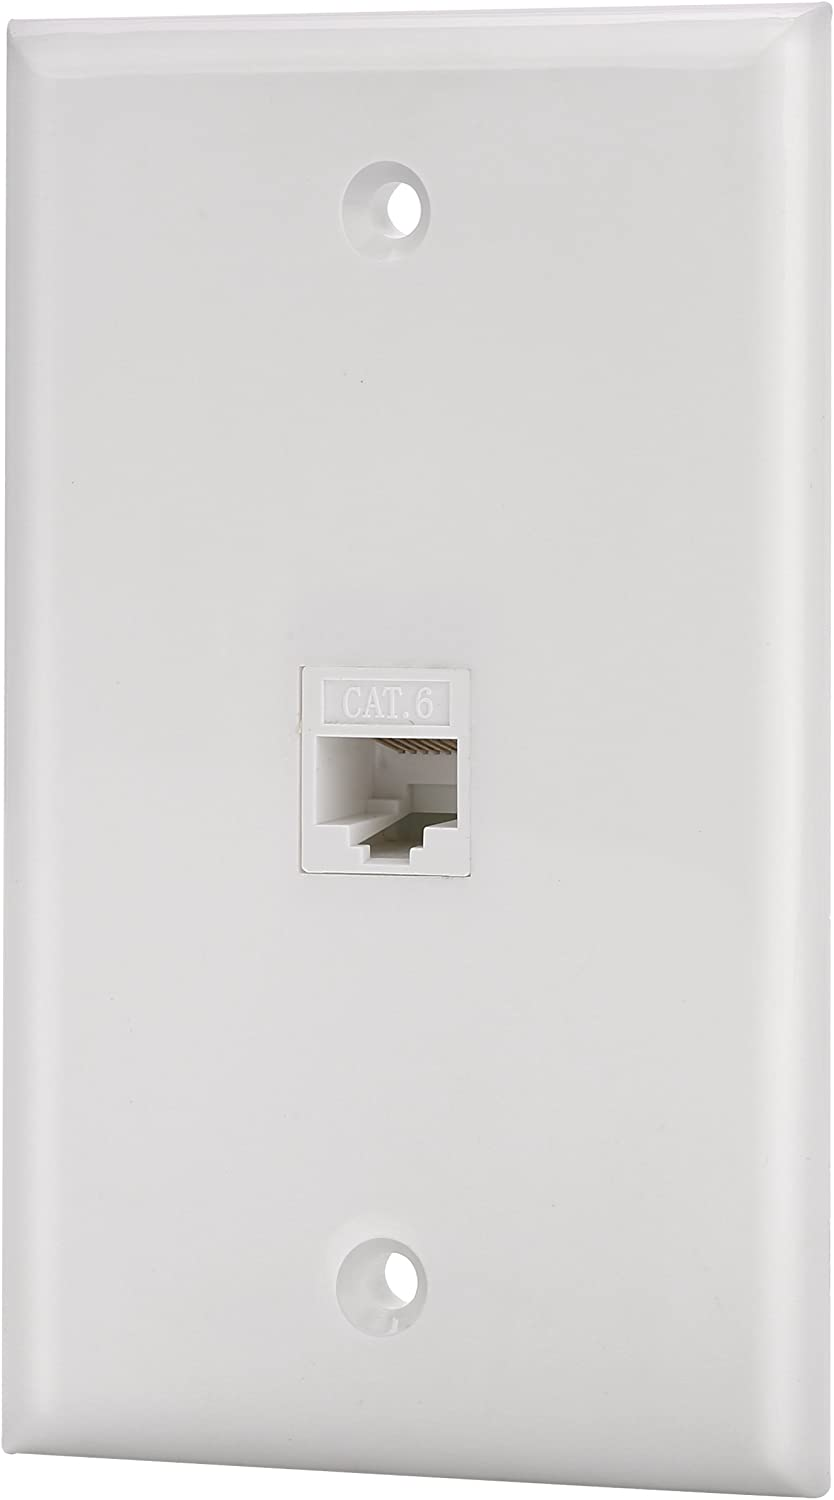 IBL-1 Port Cat6 New York Mall Keystone Ethernet cheap Wh Female Wall Plate to